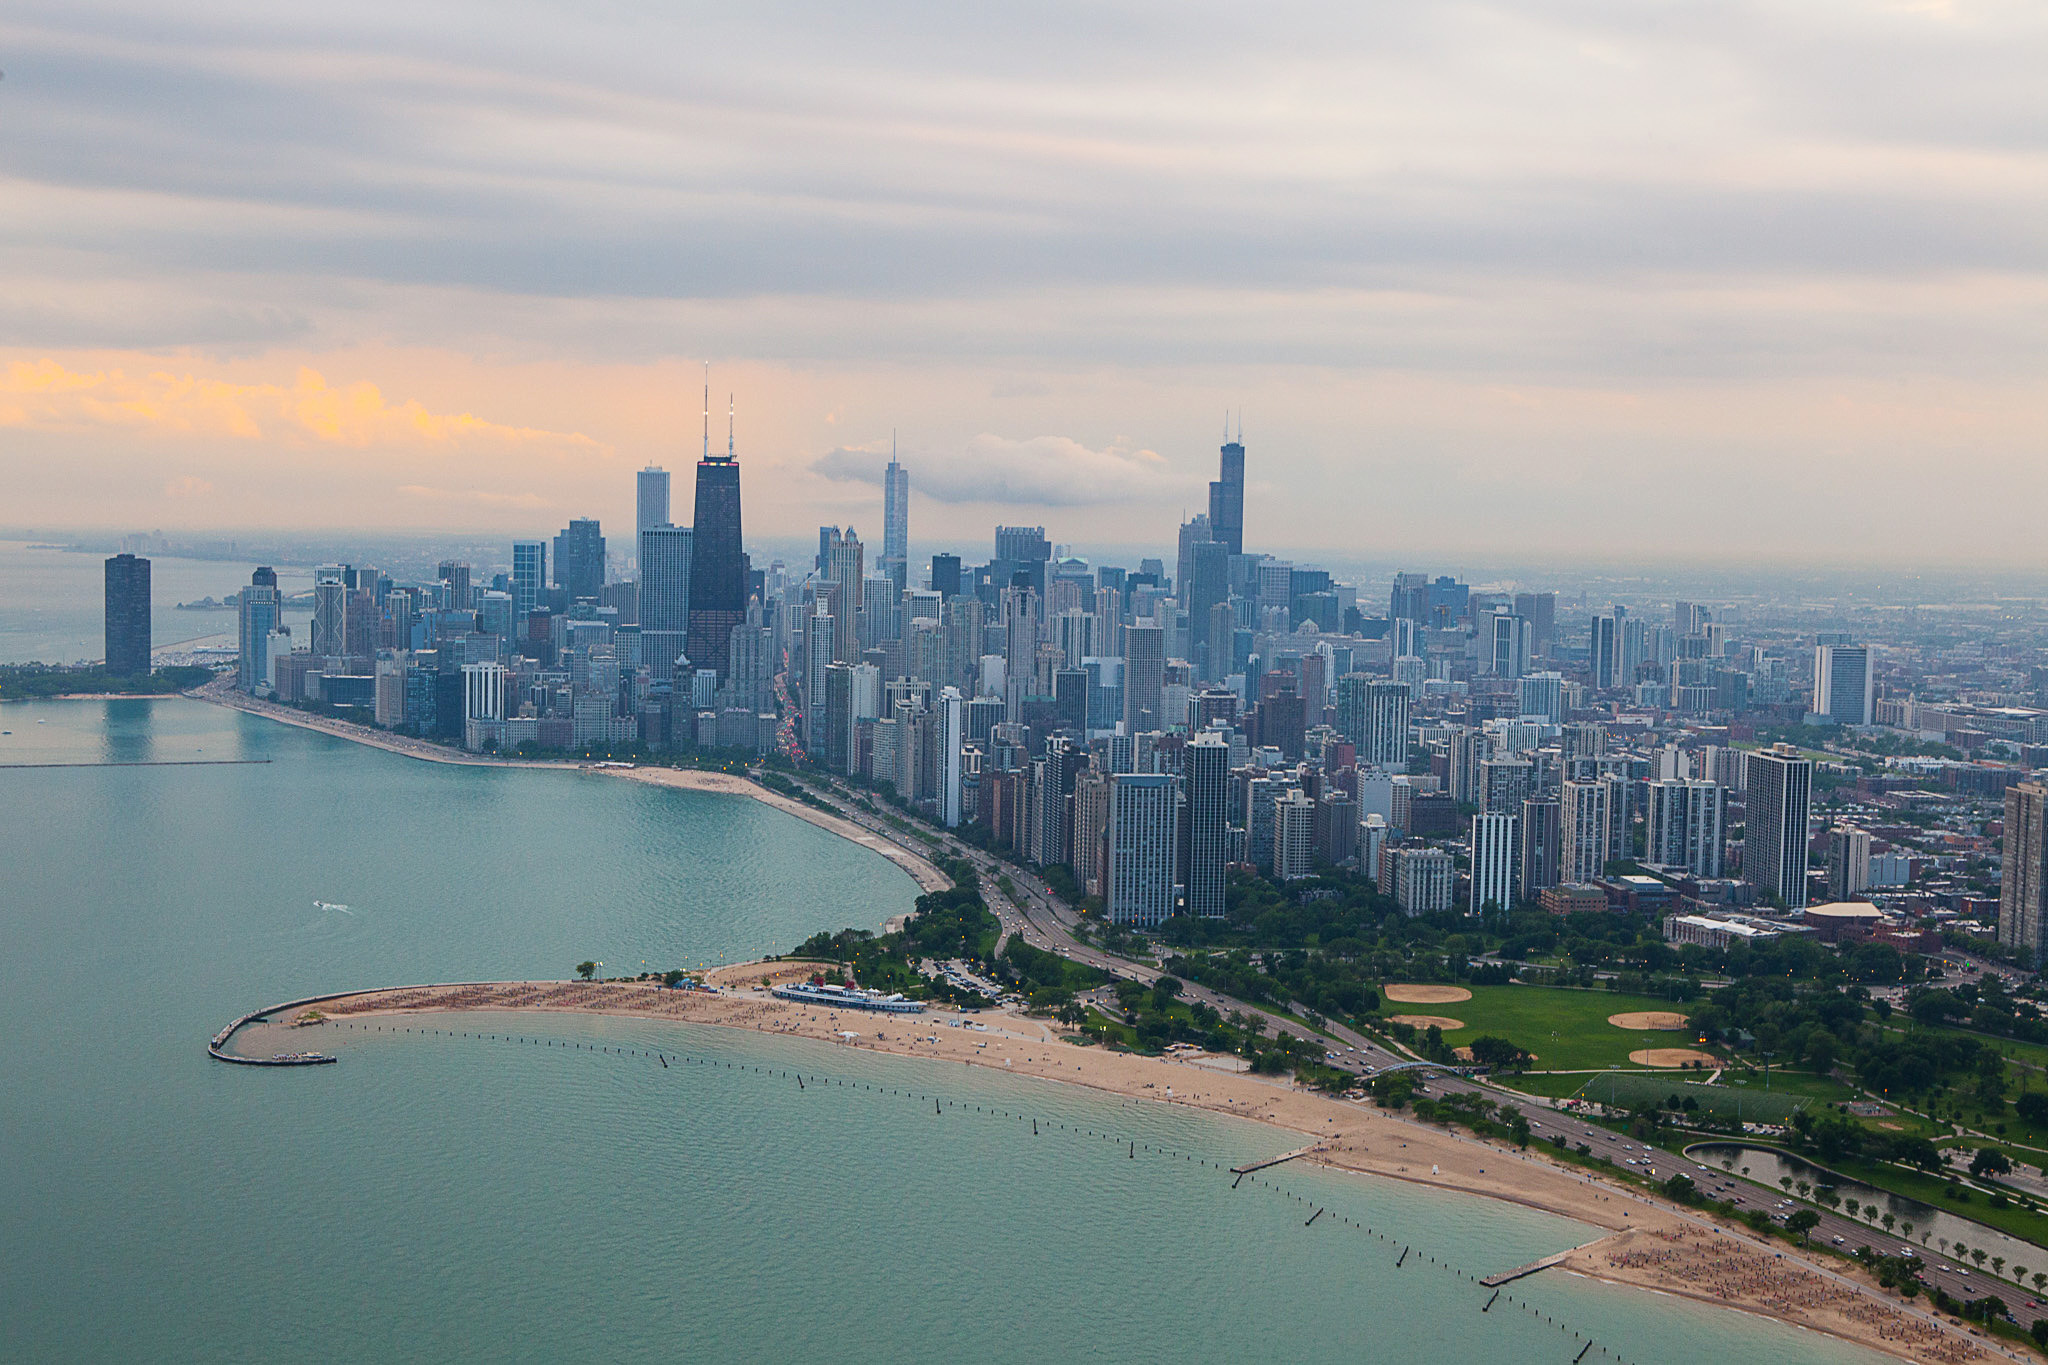 We took a helicopter tour of Chicago